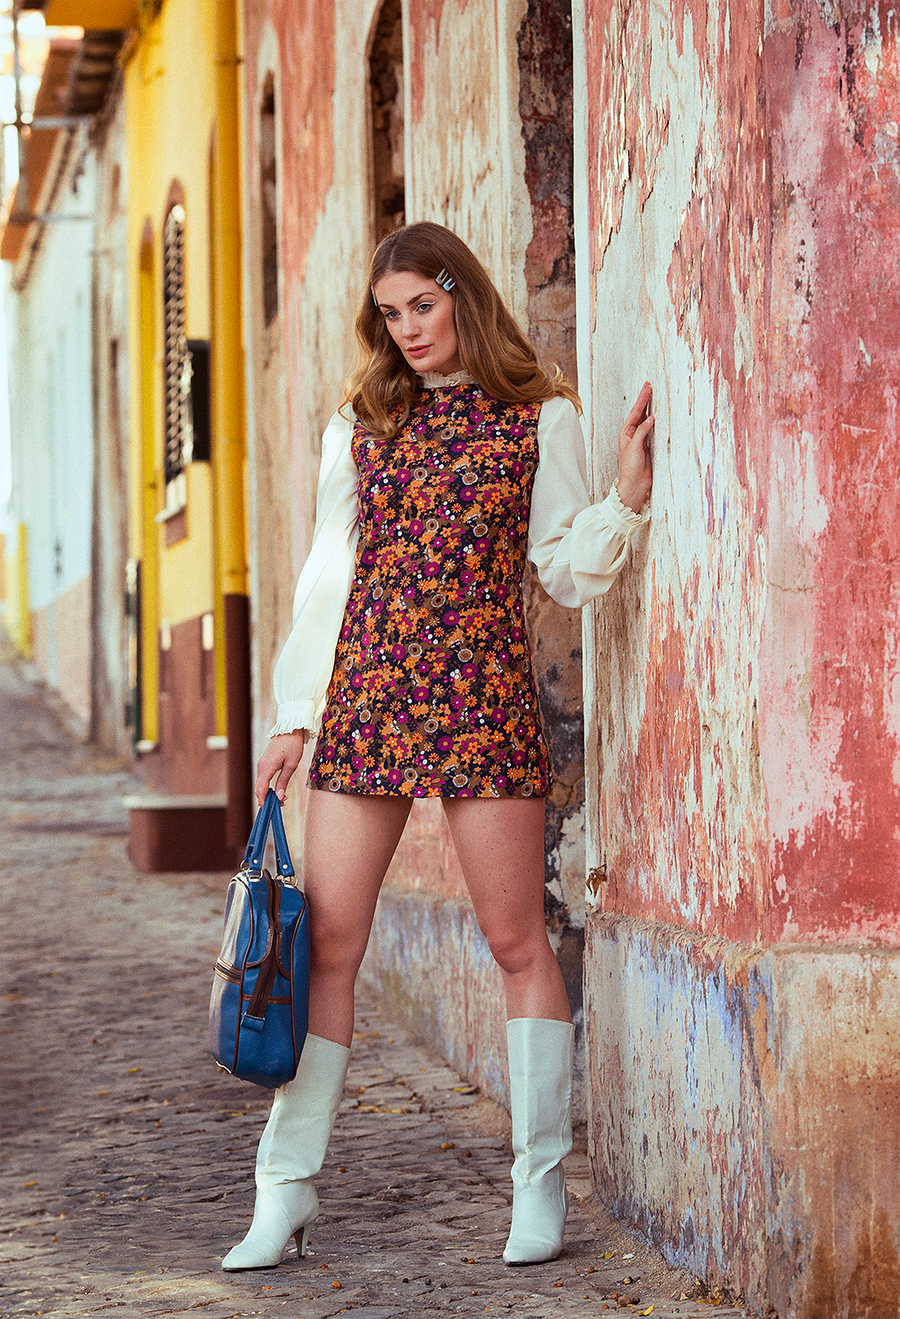 Sixties in Silves / Photography by IainT, Model Artemis Fauna, Stylist Artemisian Luxury Photographic Holidays, Tutored by Artemisian Luxury Photographic Holidays / Uploaded 14th March 2019 @ 06:38 PM